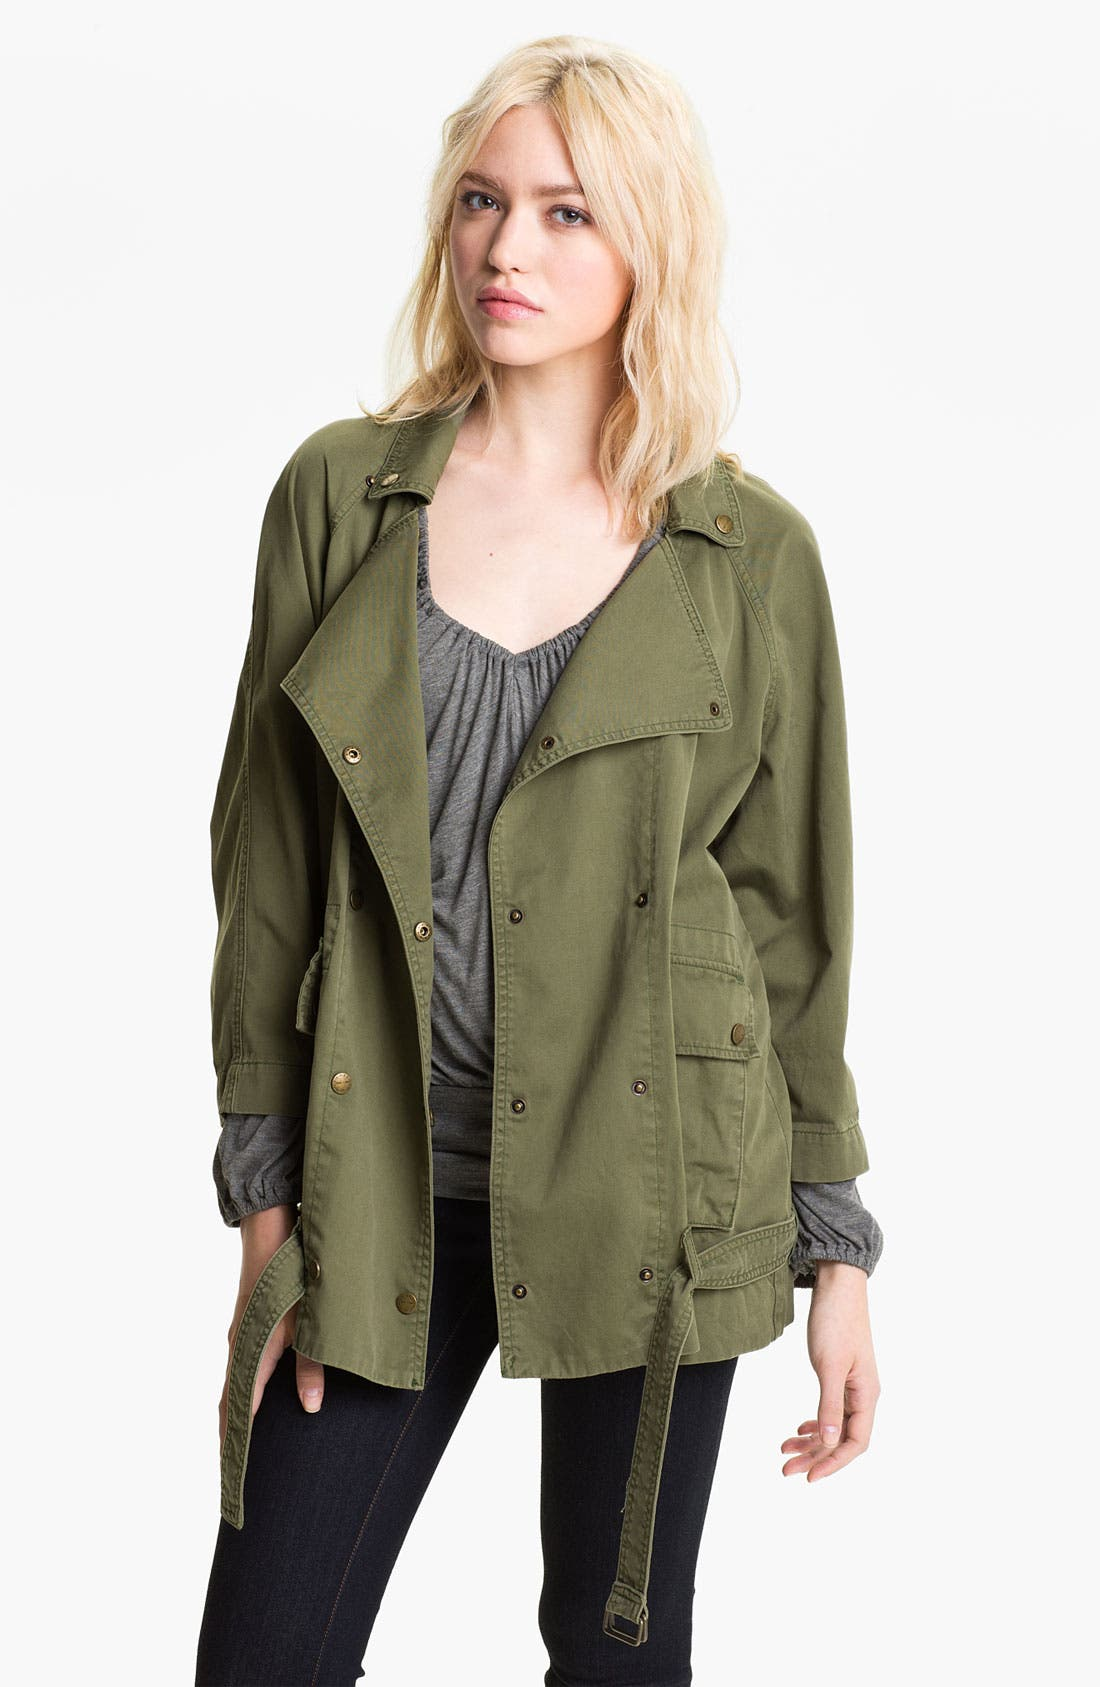 Alternate Image 1 Selected - Current/Elliott 'The Infantry' Army Jacket